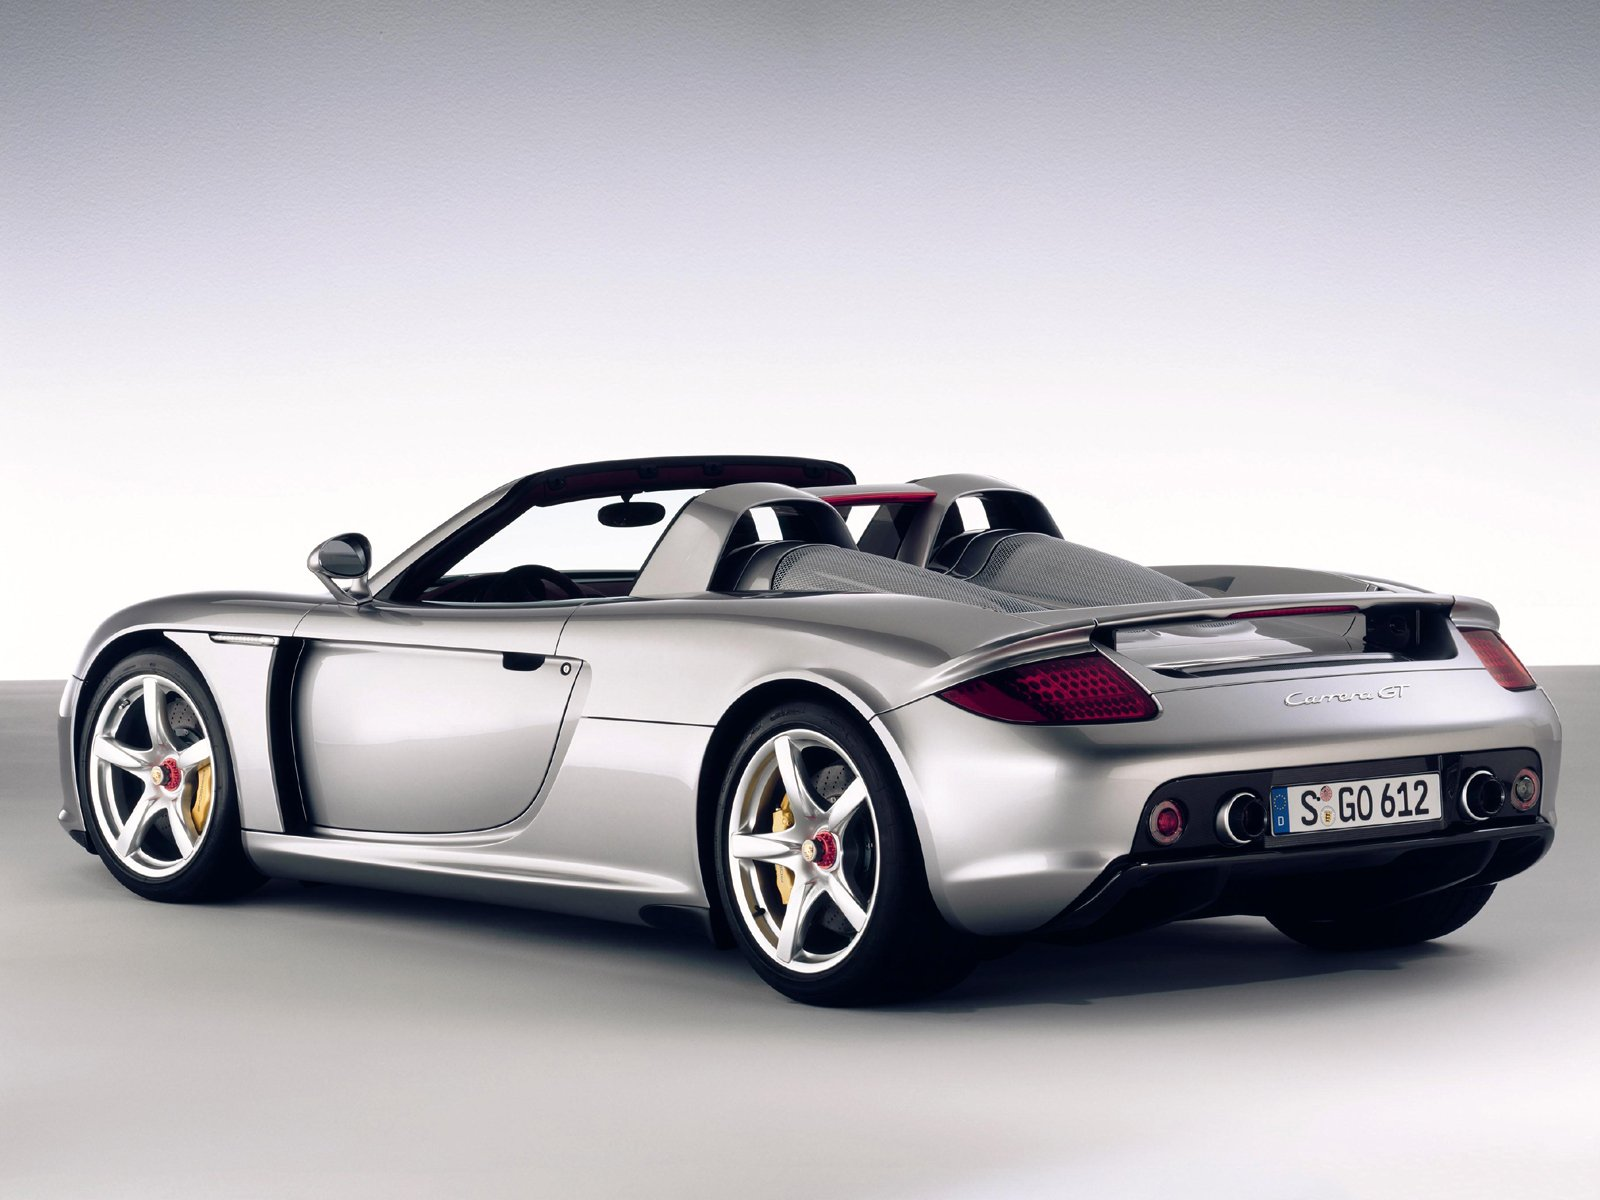 Porsche Carrera Gt Picture 8493 Porsche Photo Gallery HD Style Wallpapers Download free beautiful images and photos HD [prarshipsa.tk]